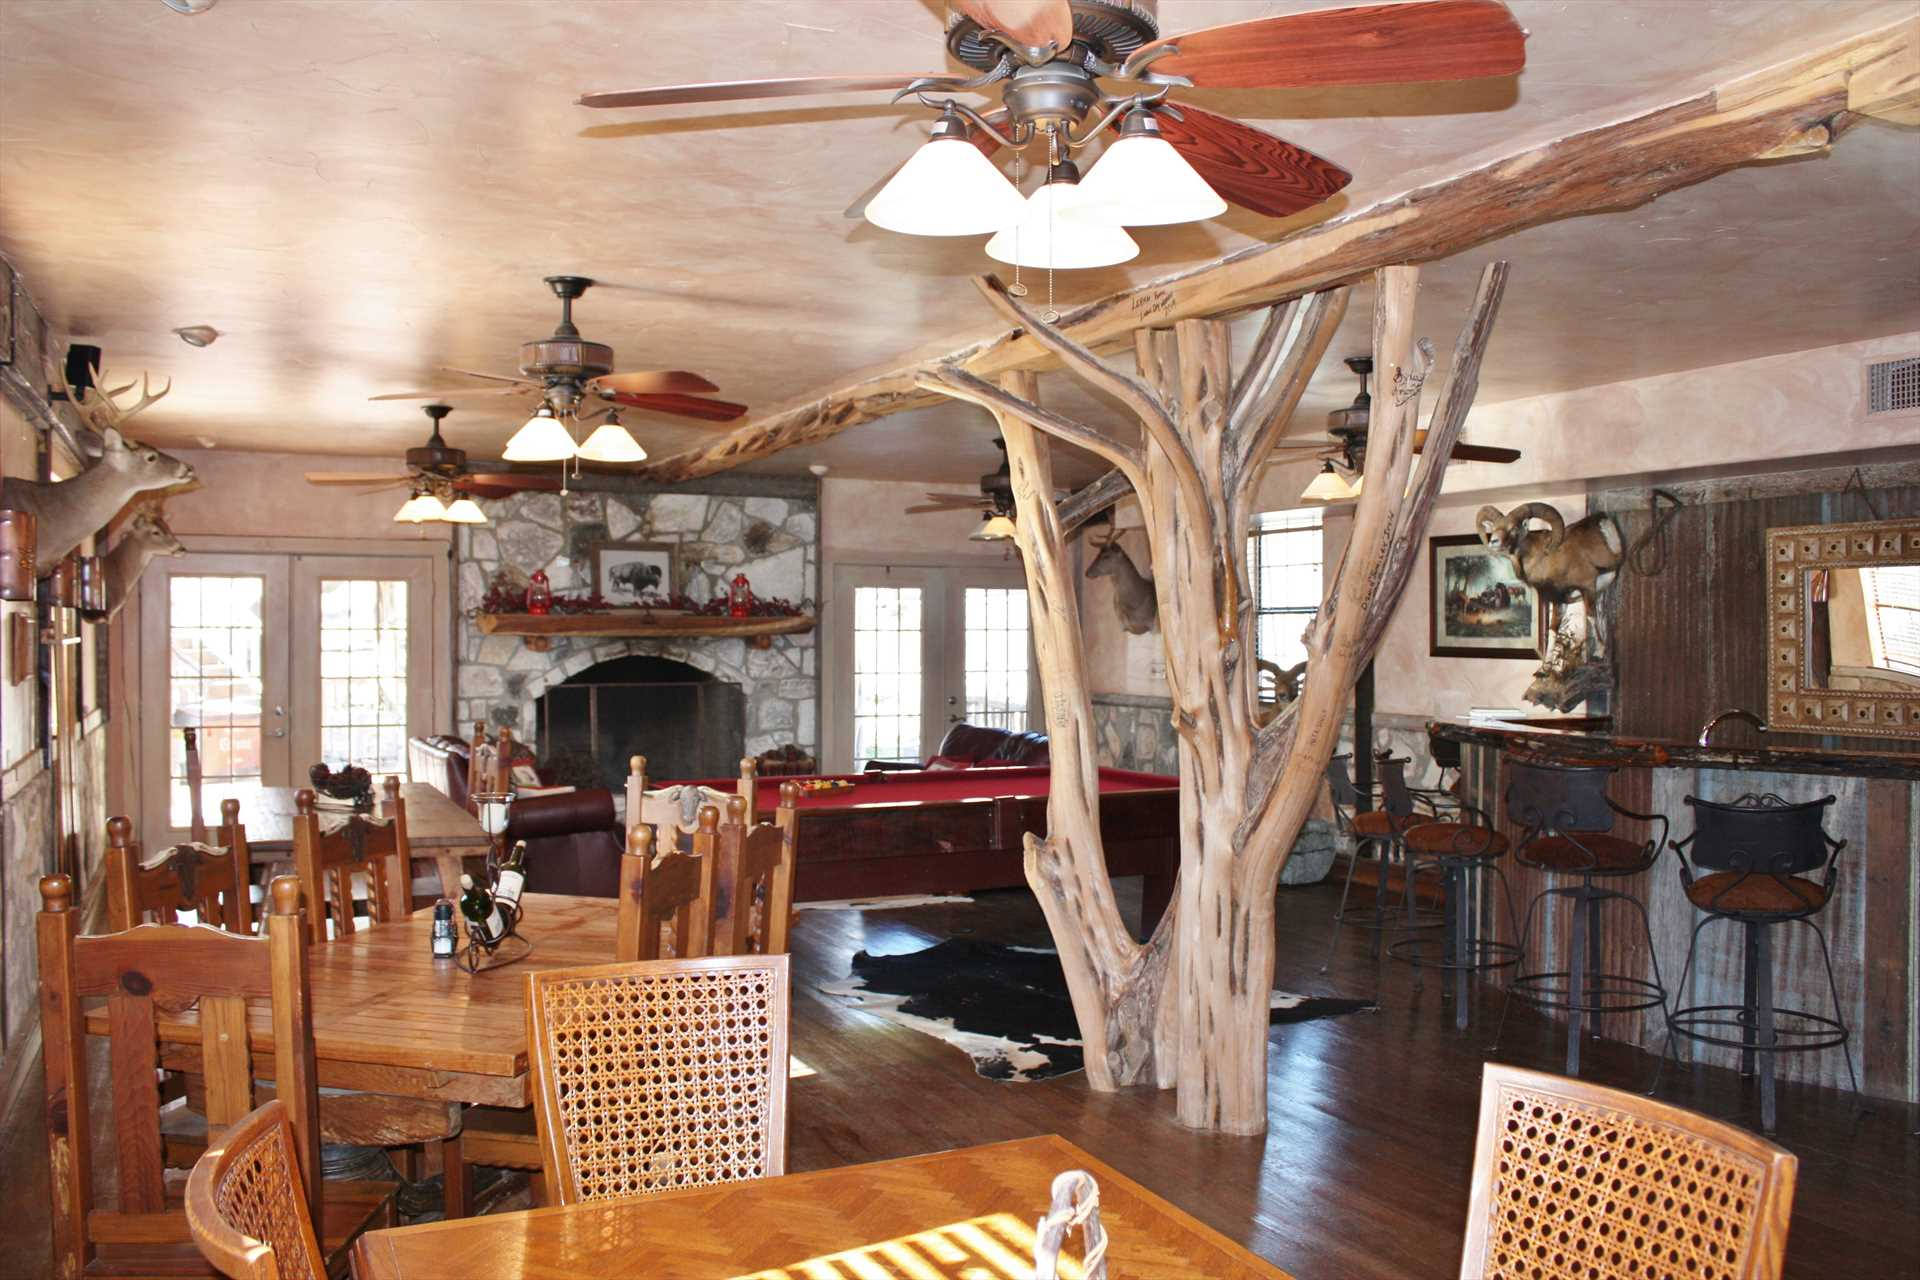 Adjacent to both the kitchen and lower living area, the dining room and bar are great places for your folks to eat and socialize.